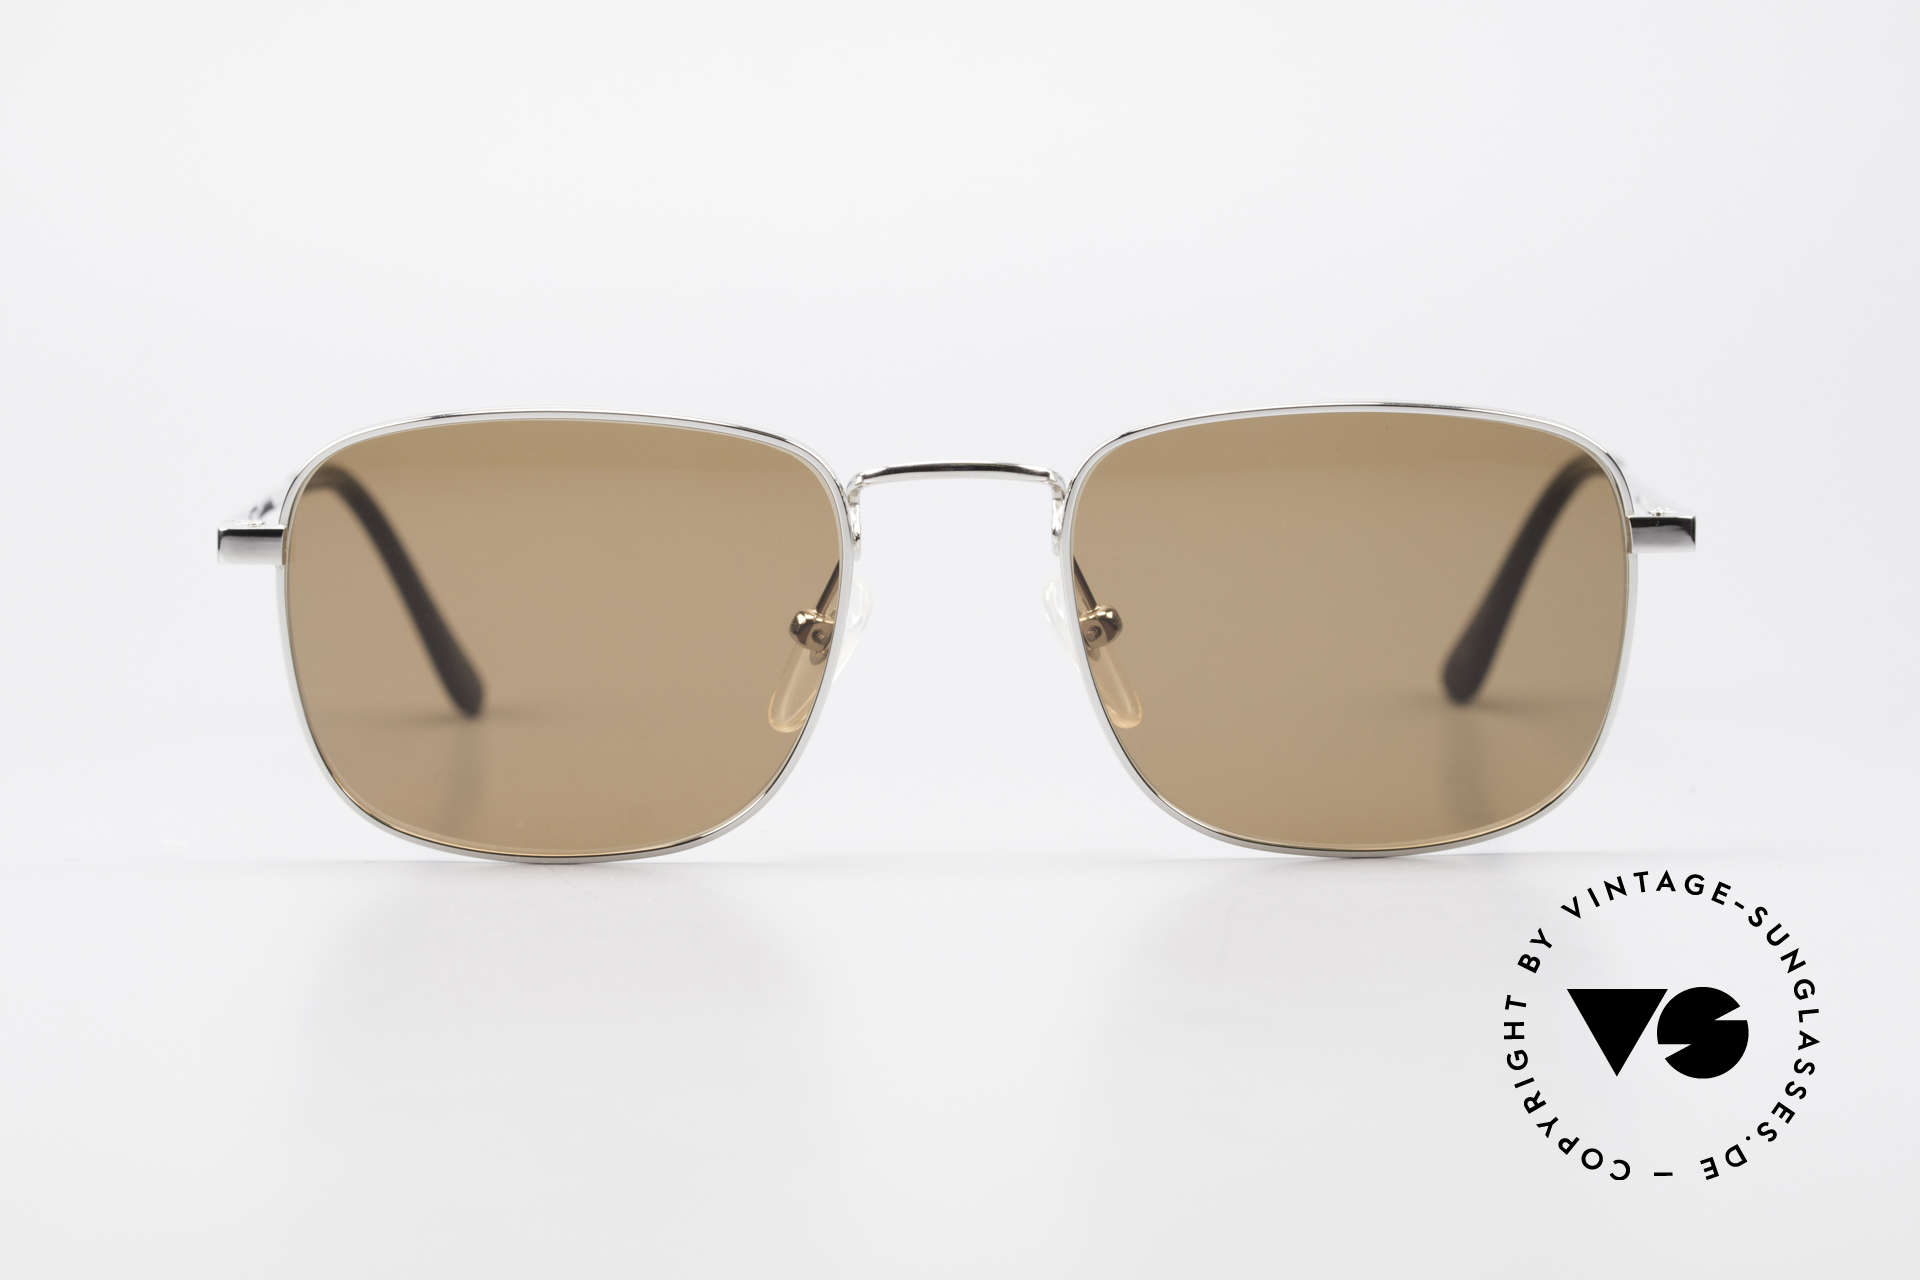 Helmut Lang 21-0004 Titanium Sunglasses Japan, stylish, elegant, puristic, functional, timeless, LANG, Made for Men